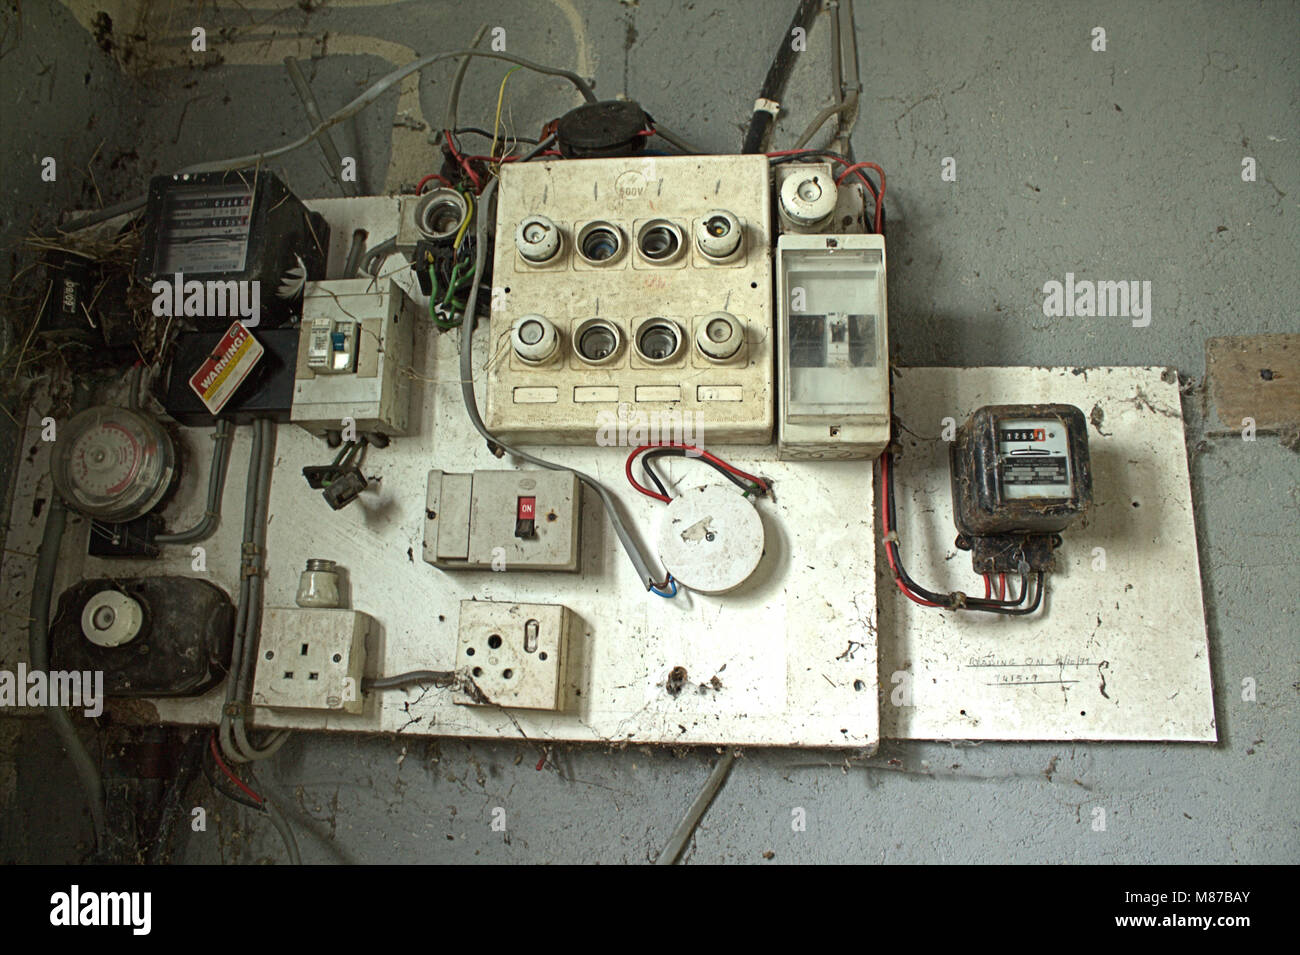 Old Fuses Fuse Box Stock Photos Images Boxes Range Board And Wiring Which Needs A Total Upgrade Image